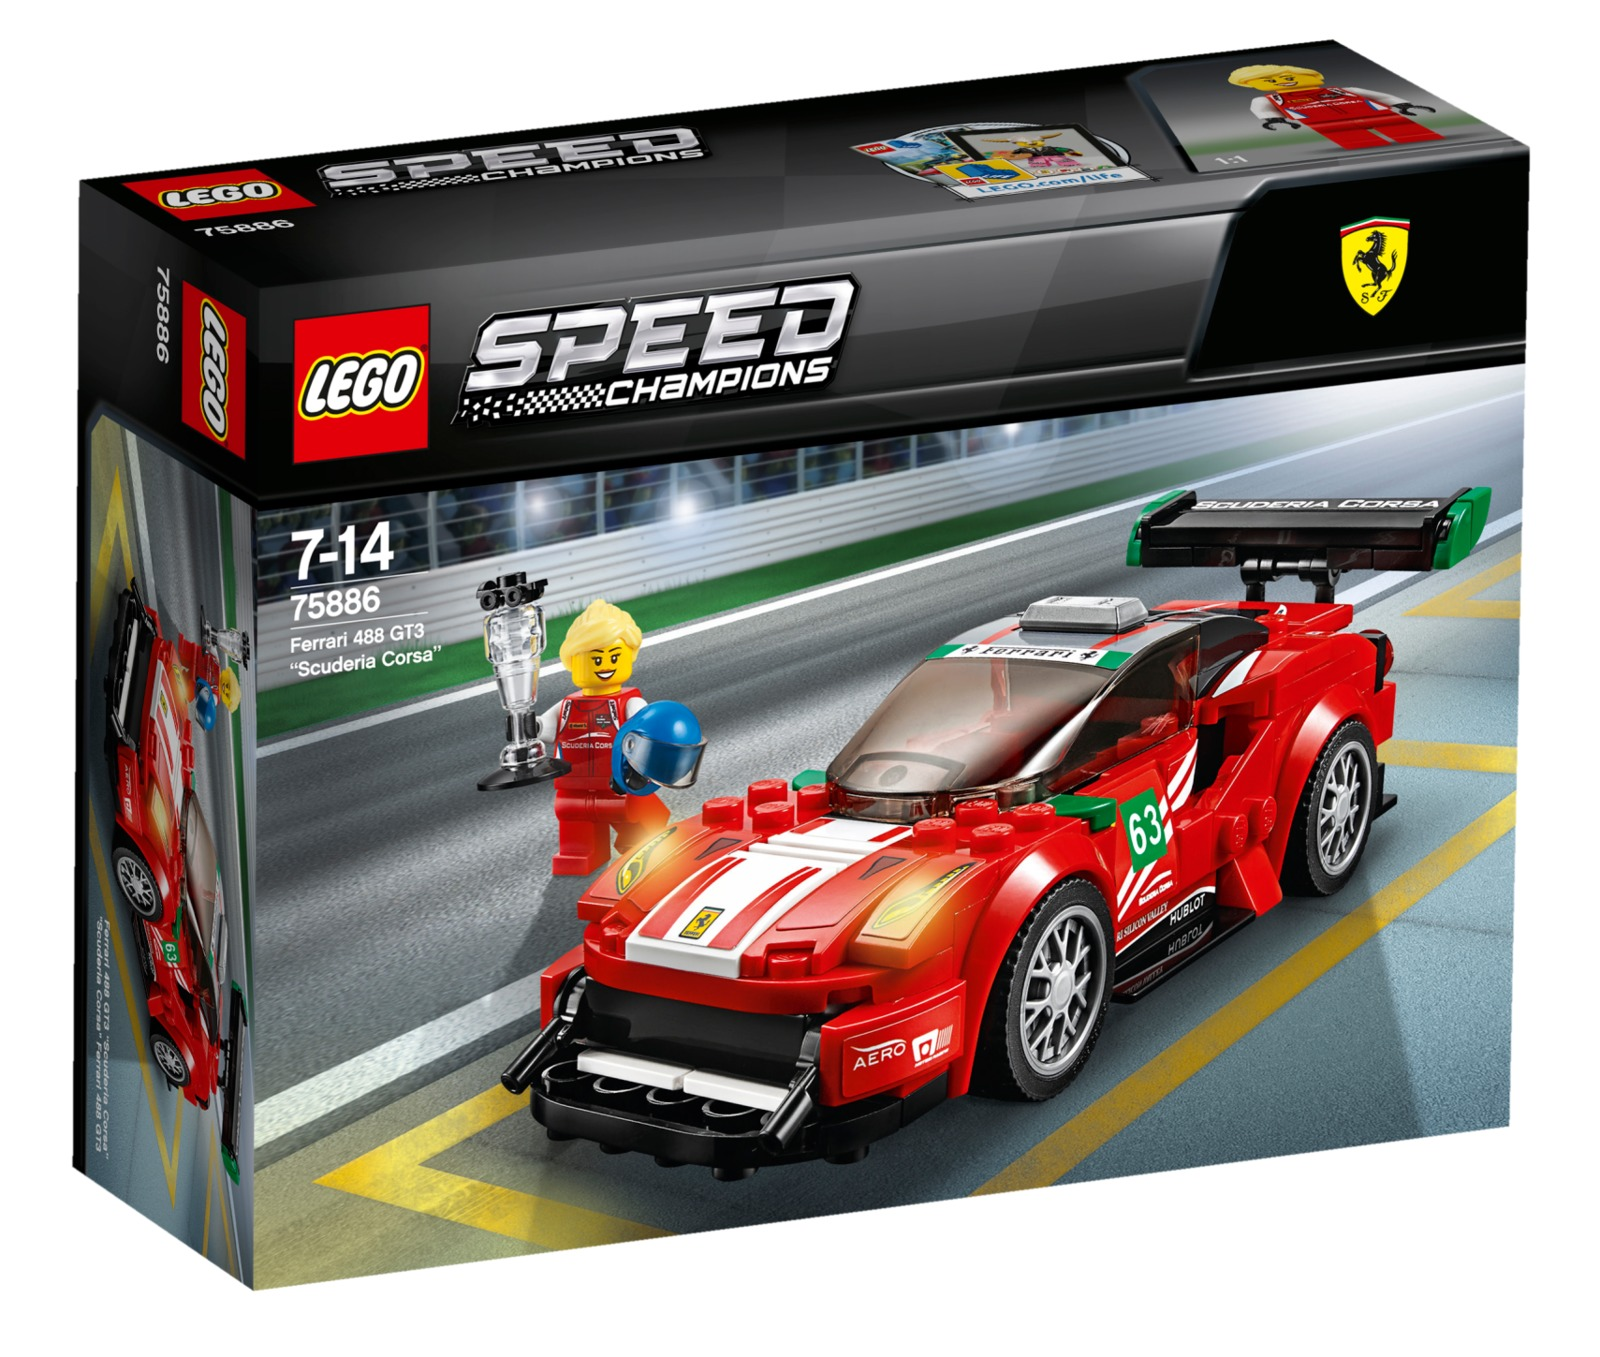 lego speed champions ferrari 488 gt3 scuderia corsa 75886 toy at mighty ape nz. Black Bedroom Furniture Sets. Home Design Ideas